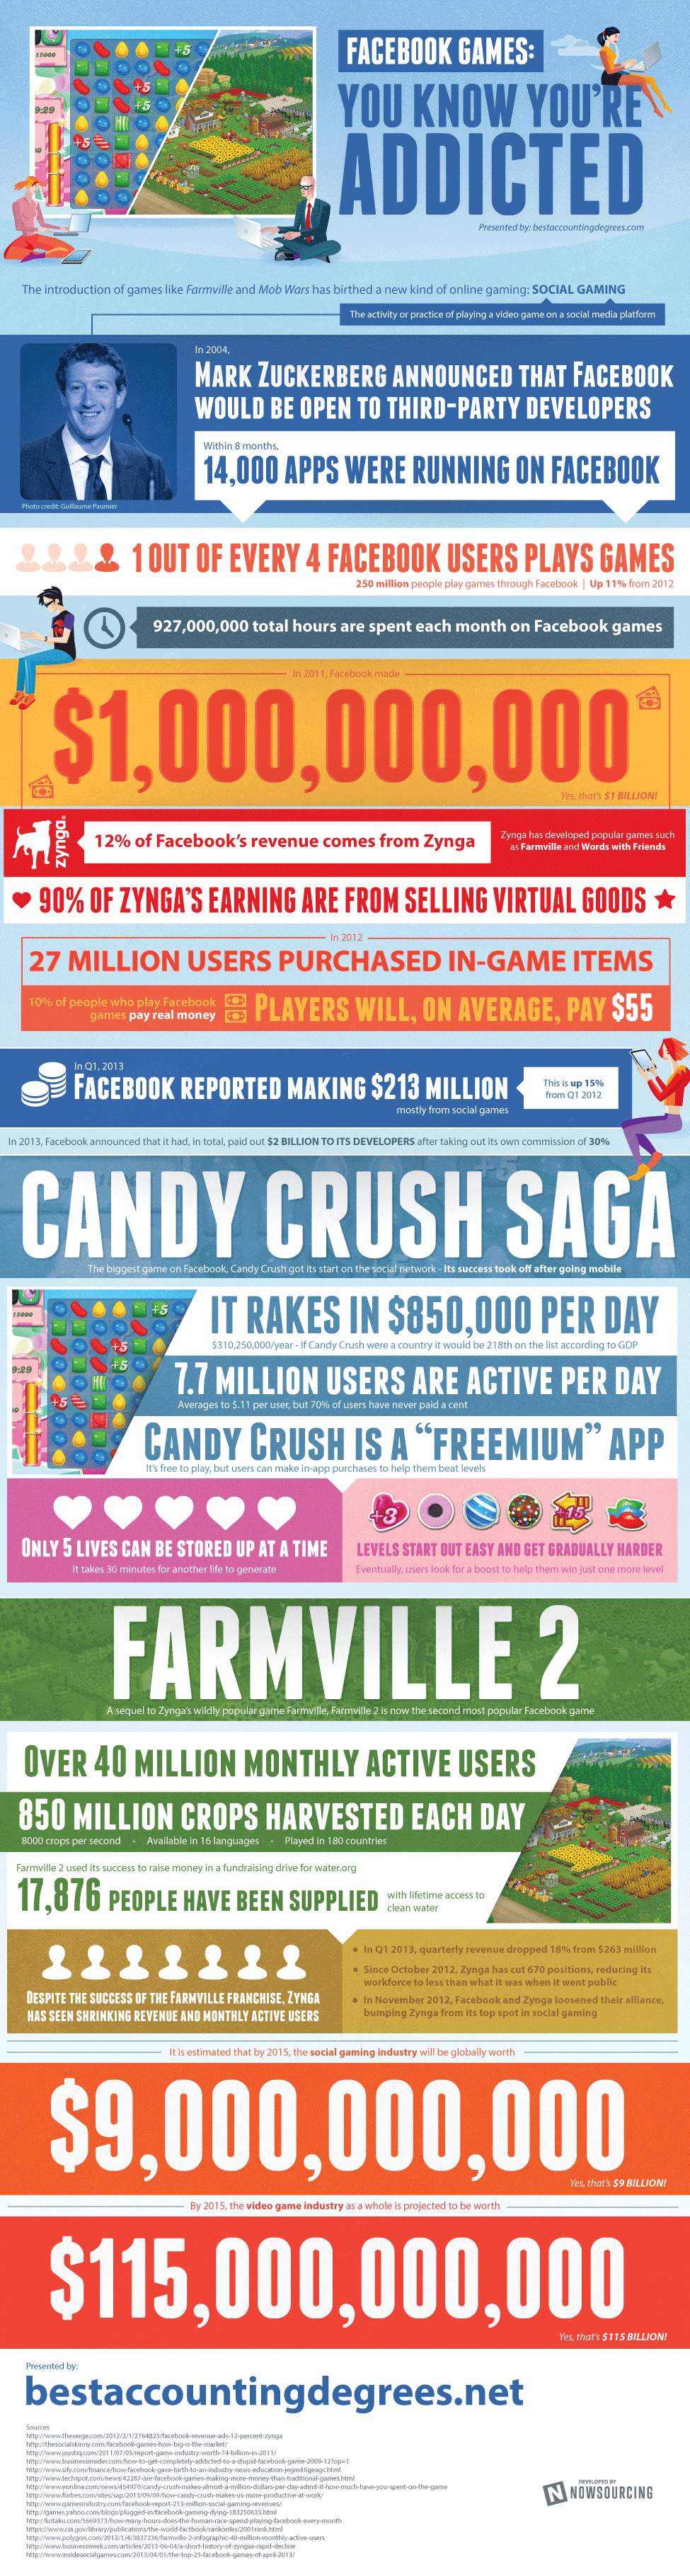 Facebook Games: You Know You're Addicted